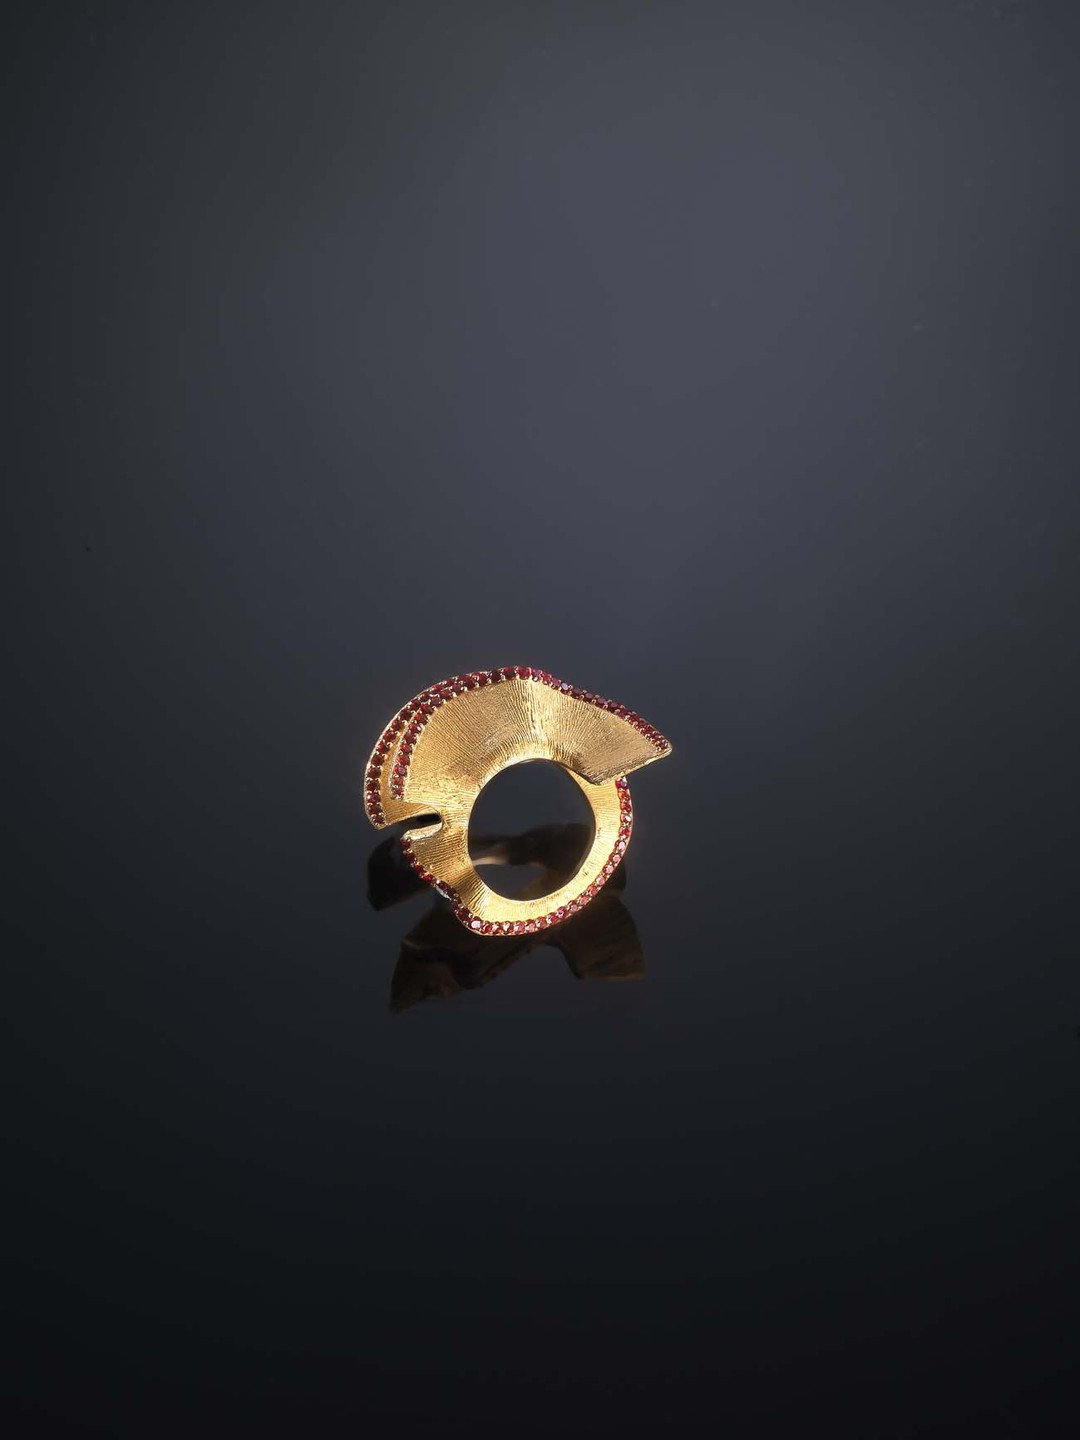 Gold ring from the Luz Camino Pencil Shavings collection with fire sapphires.